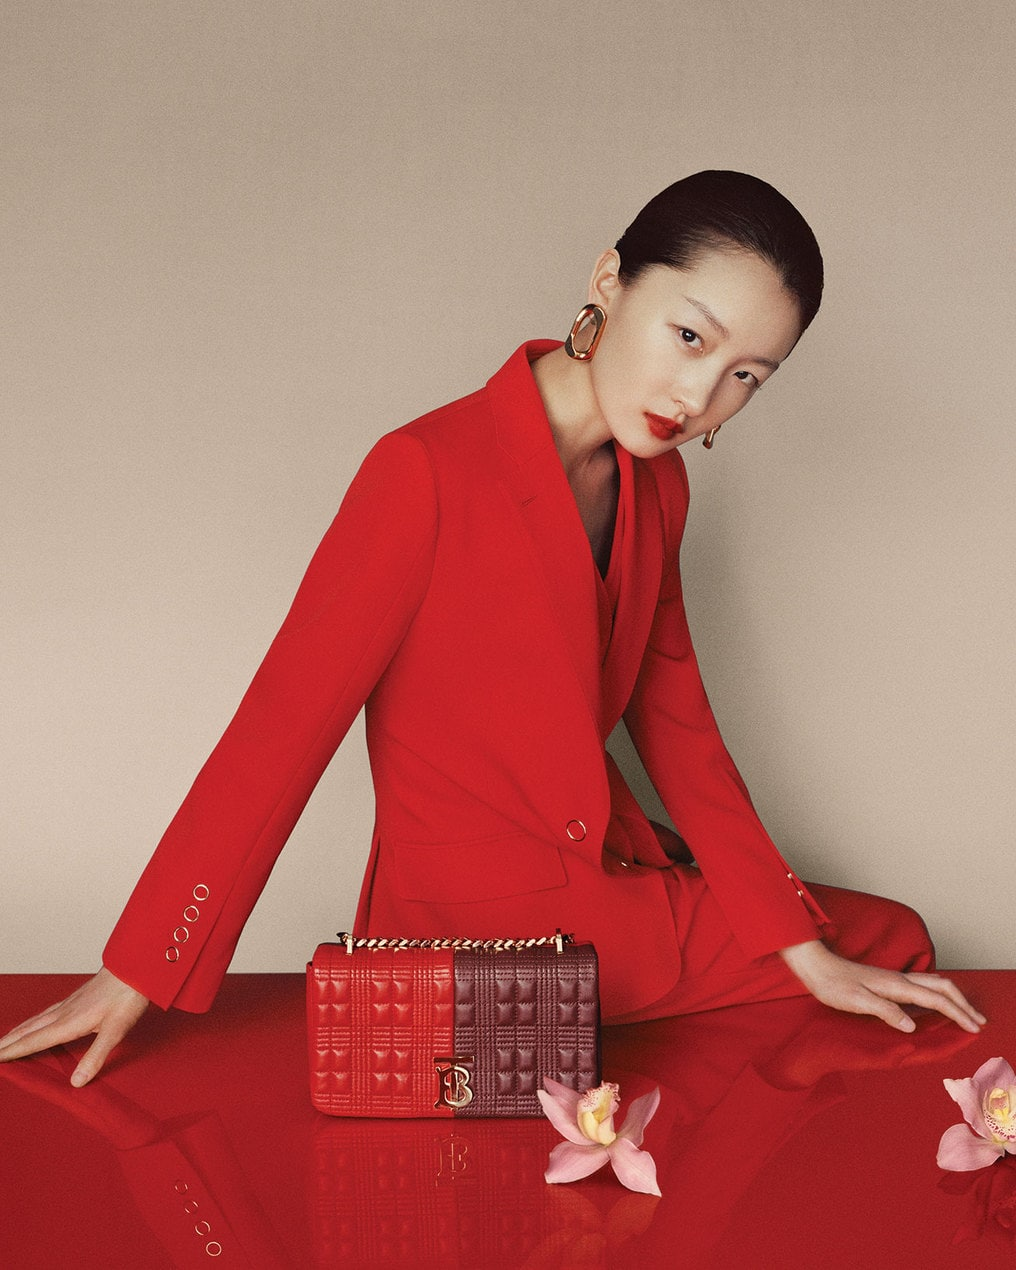 Burberry-Chinese-New-Year-2020-Campaign-c-Courtesy-of-Burberry-_-Leslie-Zhang_004